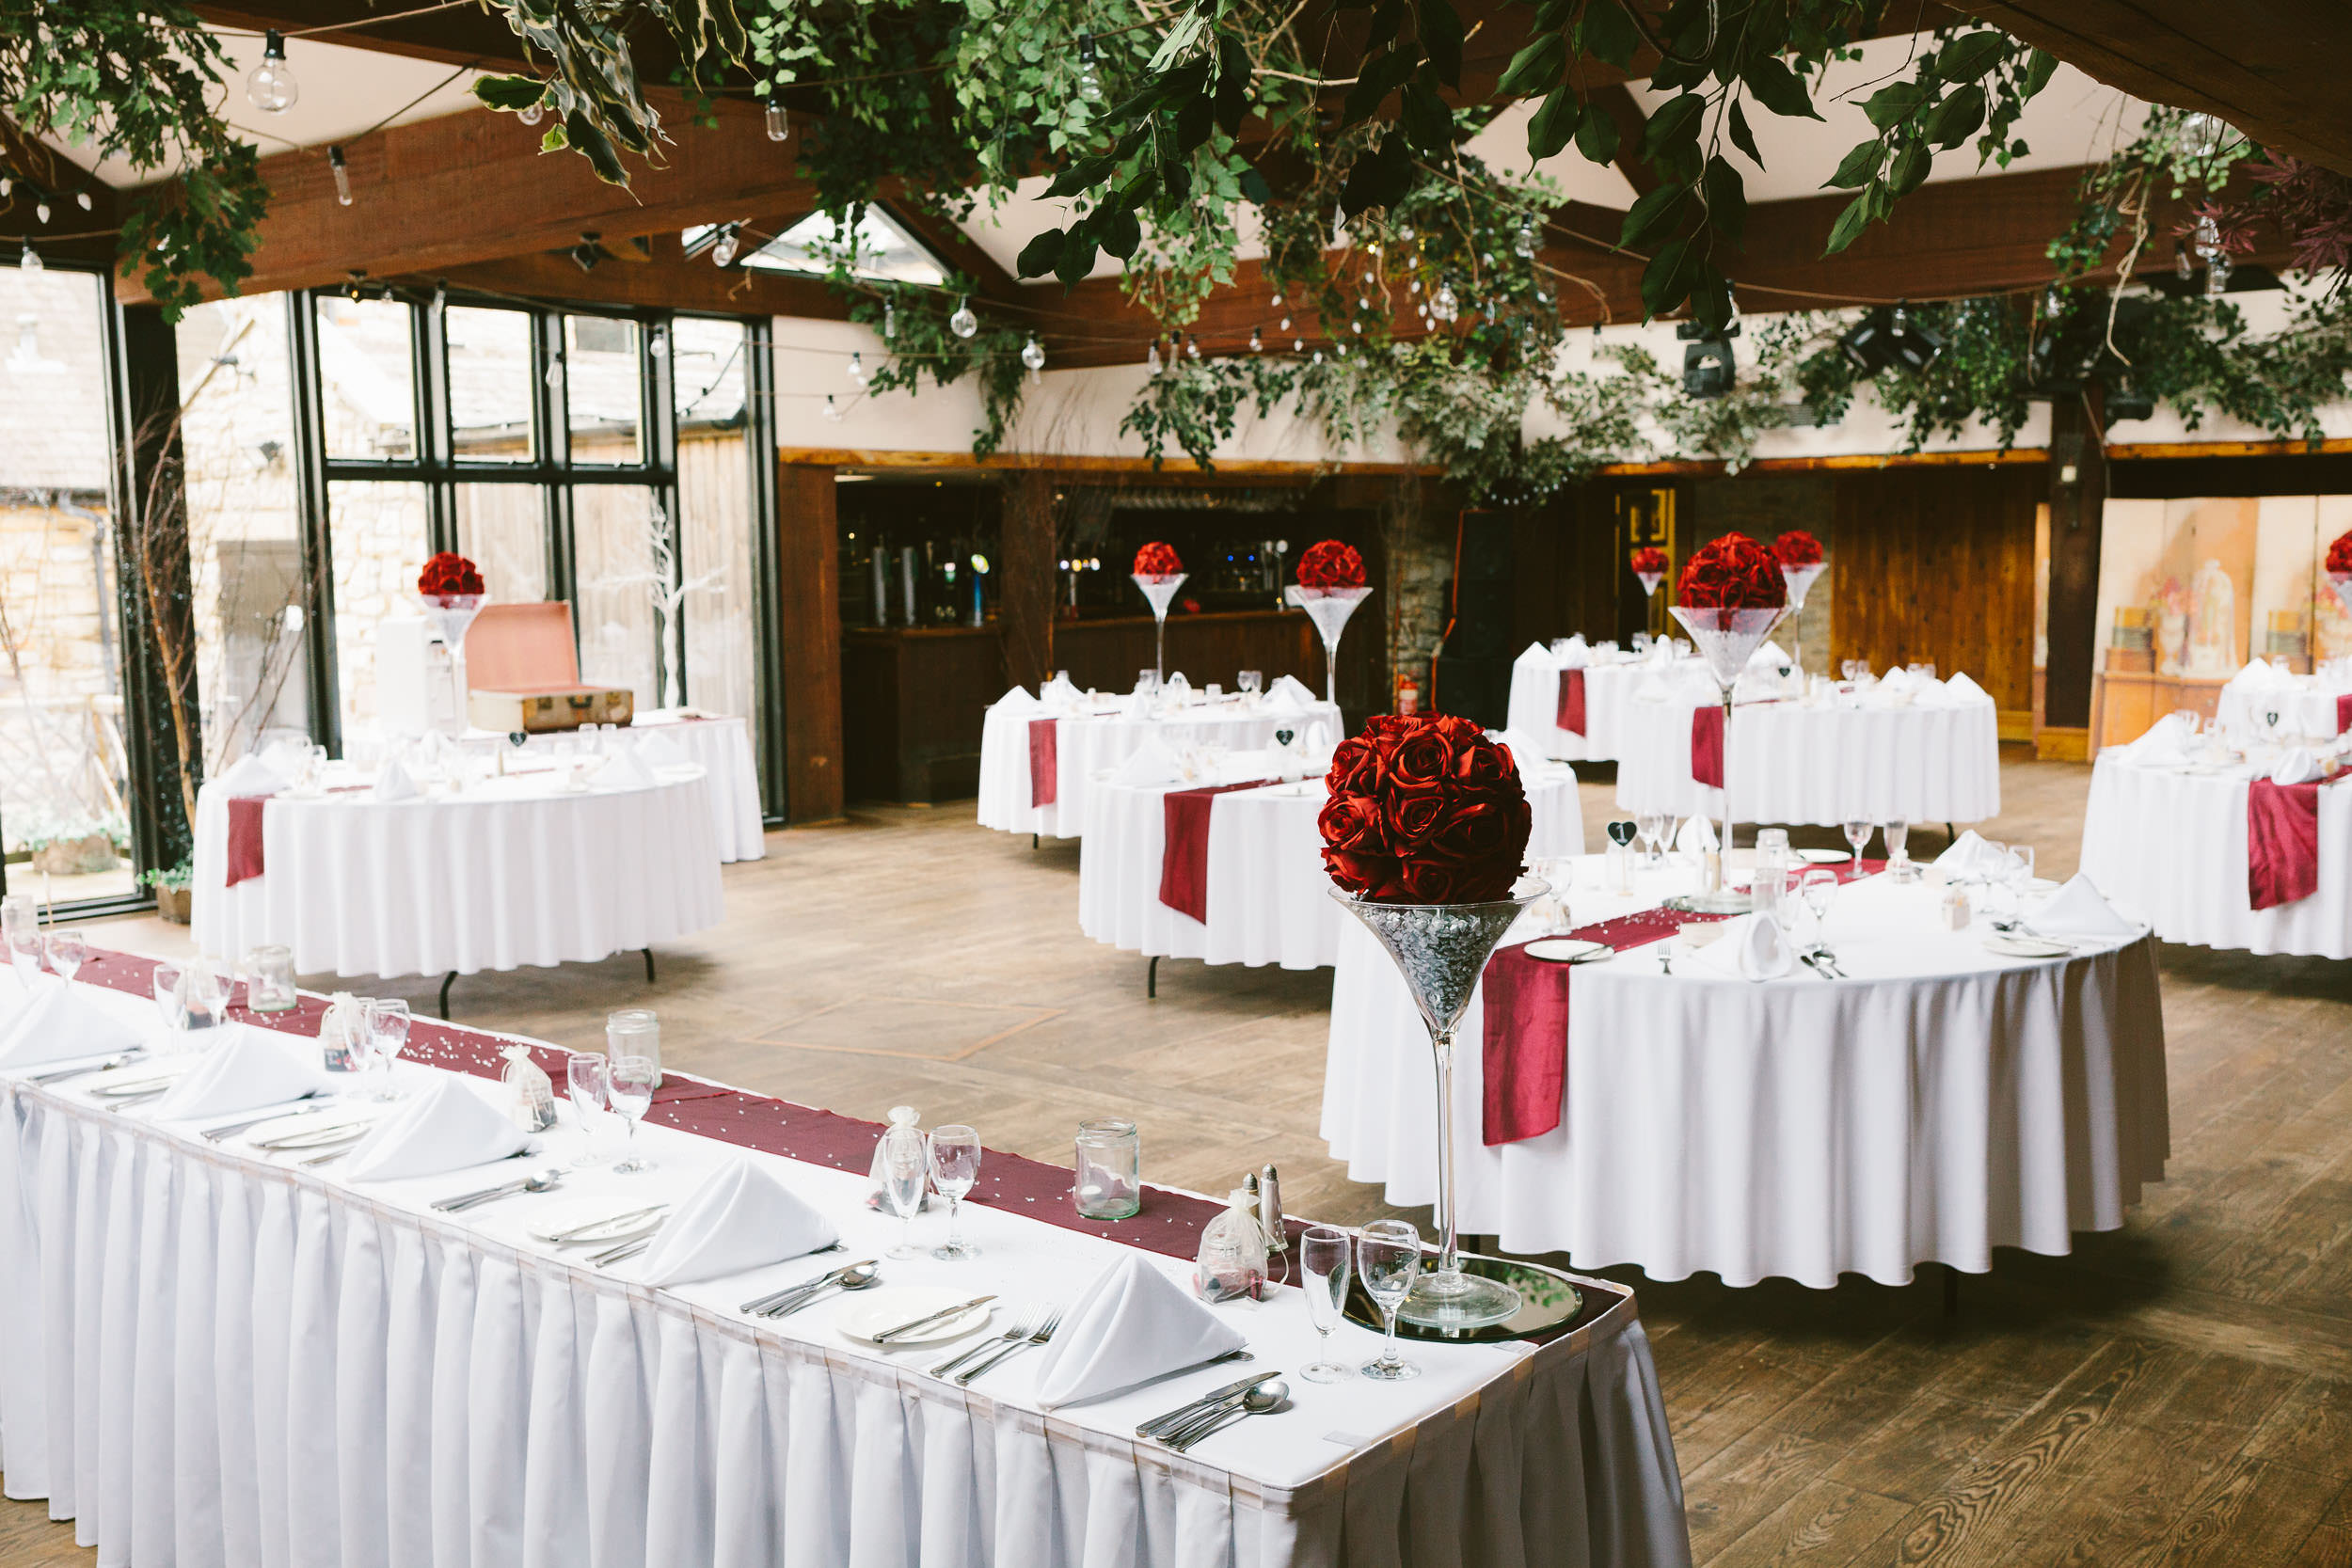 Interior of South Causey Inn set up for wedding